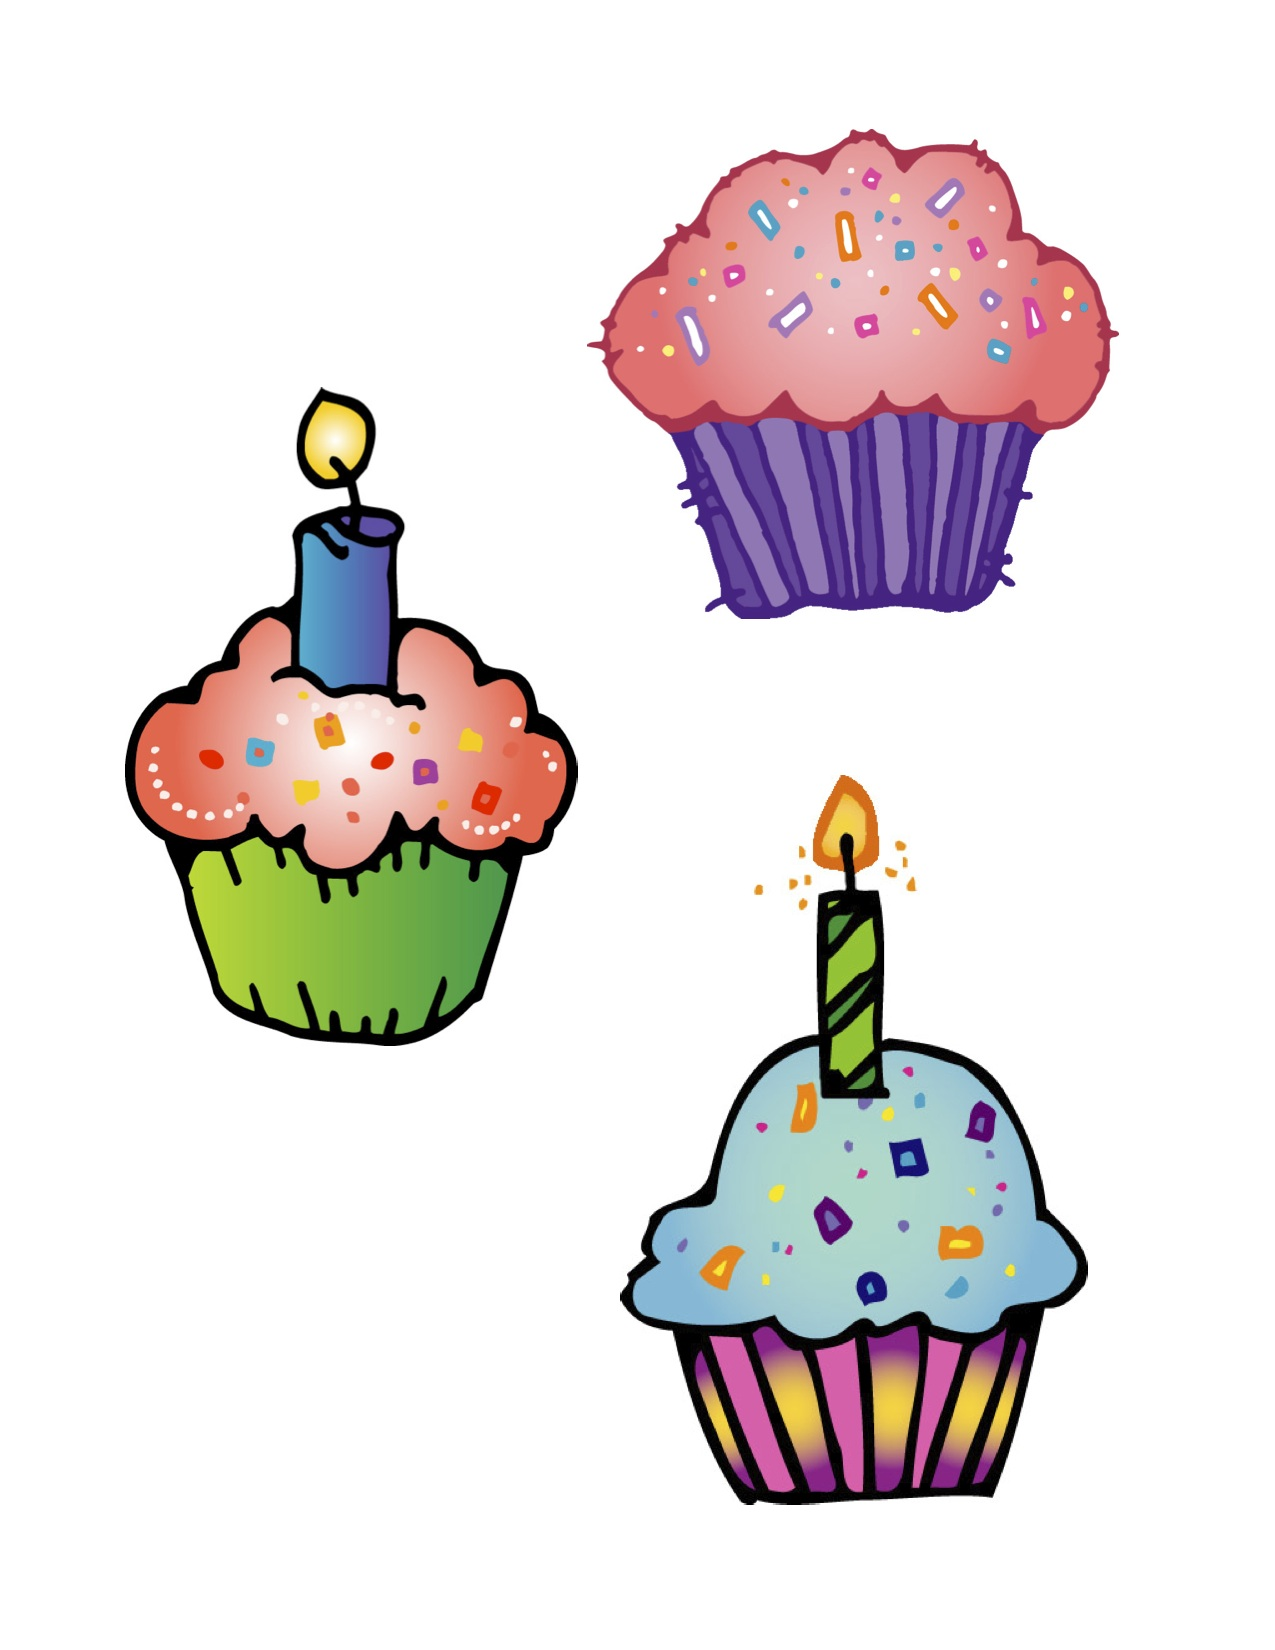 Happy birthday cupcake. Best clipart clipartion com